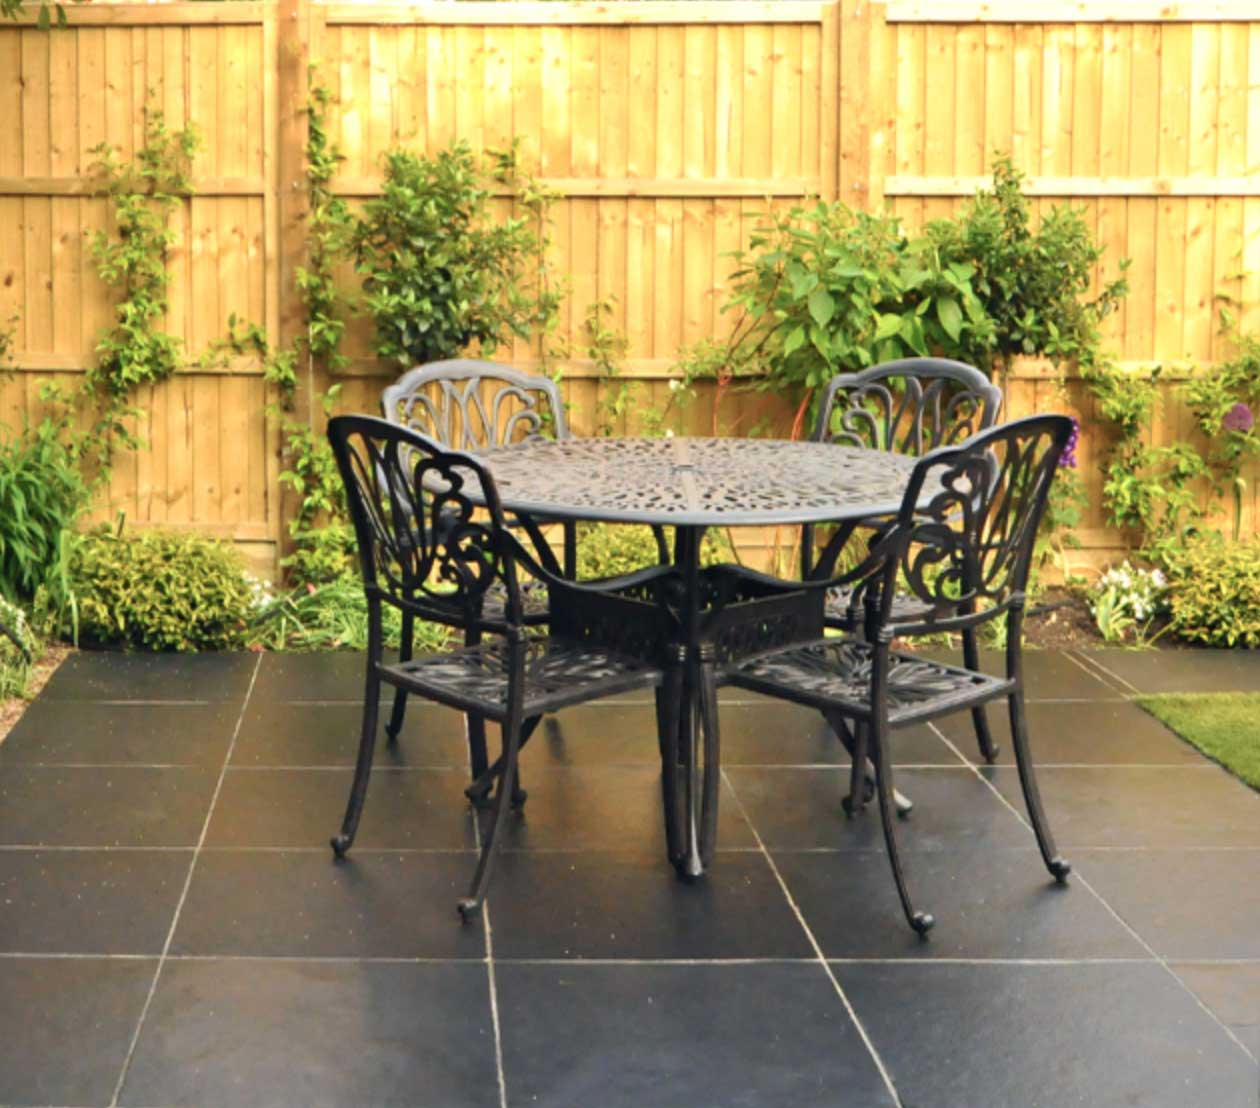 Patio ideas in London gardens